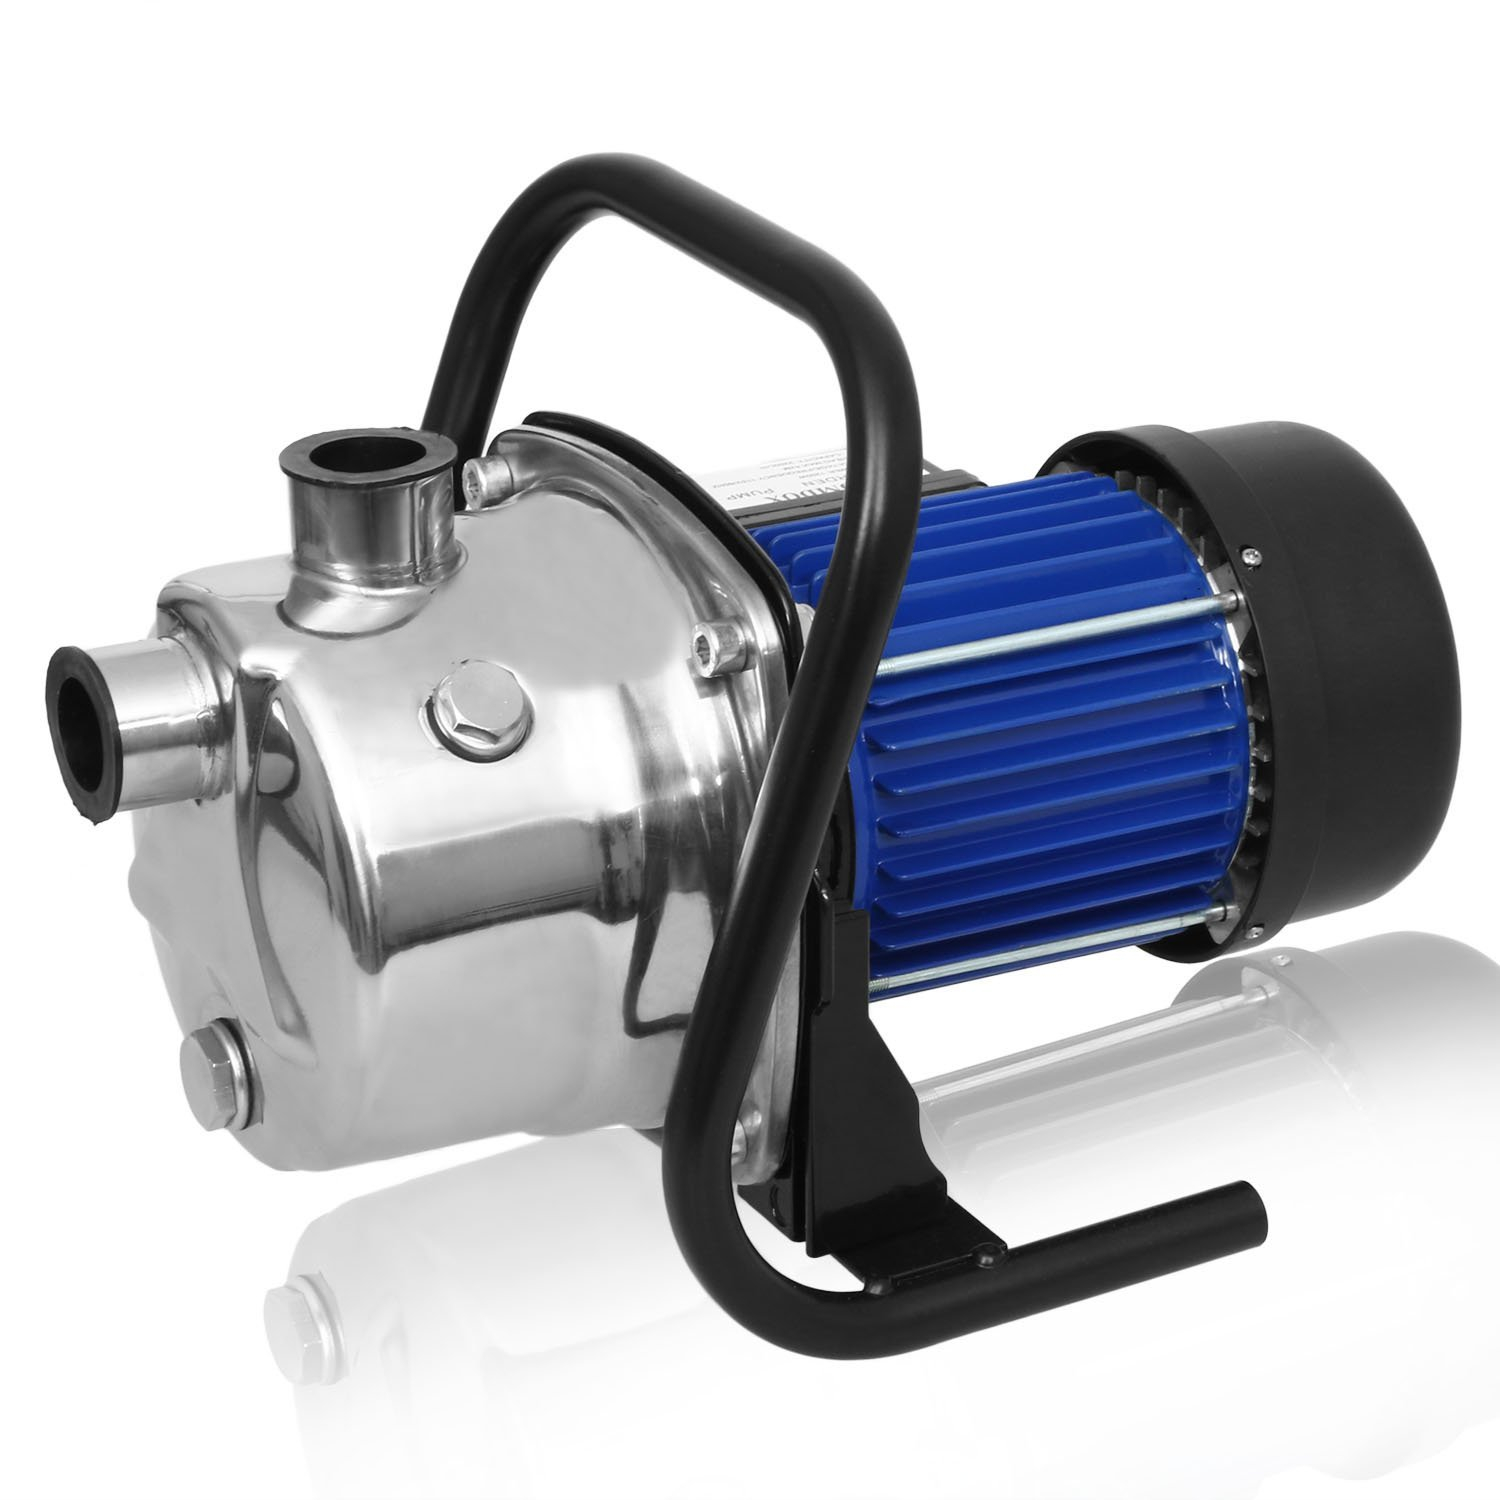 1.6HP Booster Pump ,Stainless Shallow Well Pump Lawn Sprinkling Pump, Automatic ON/OFF Pool Water Cover Pump for Home Garden Irrigation Water Supply